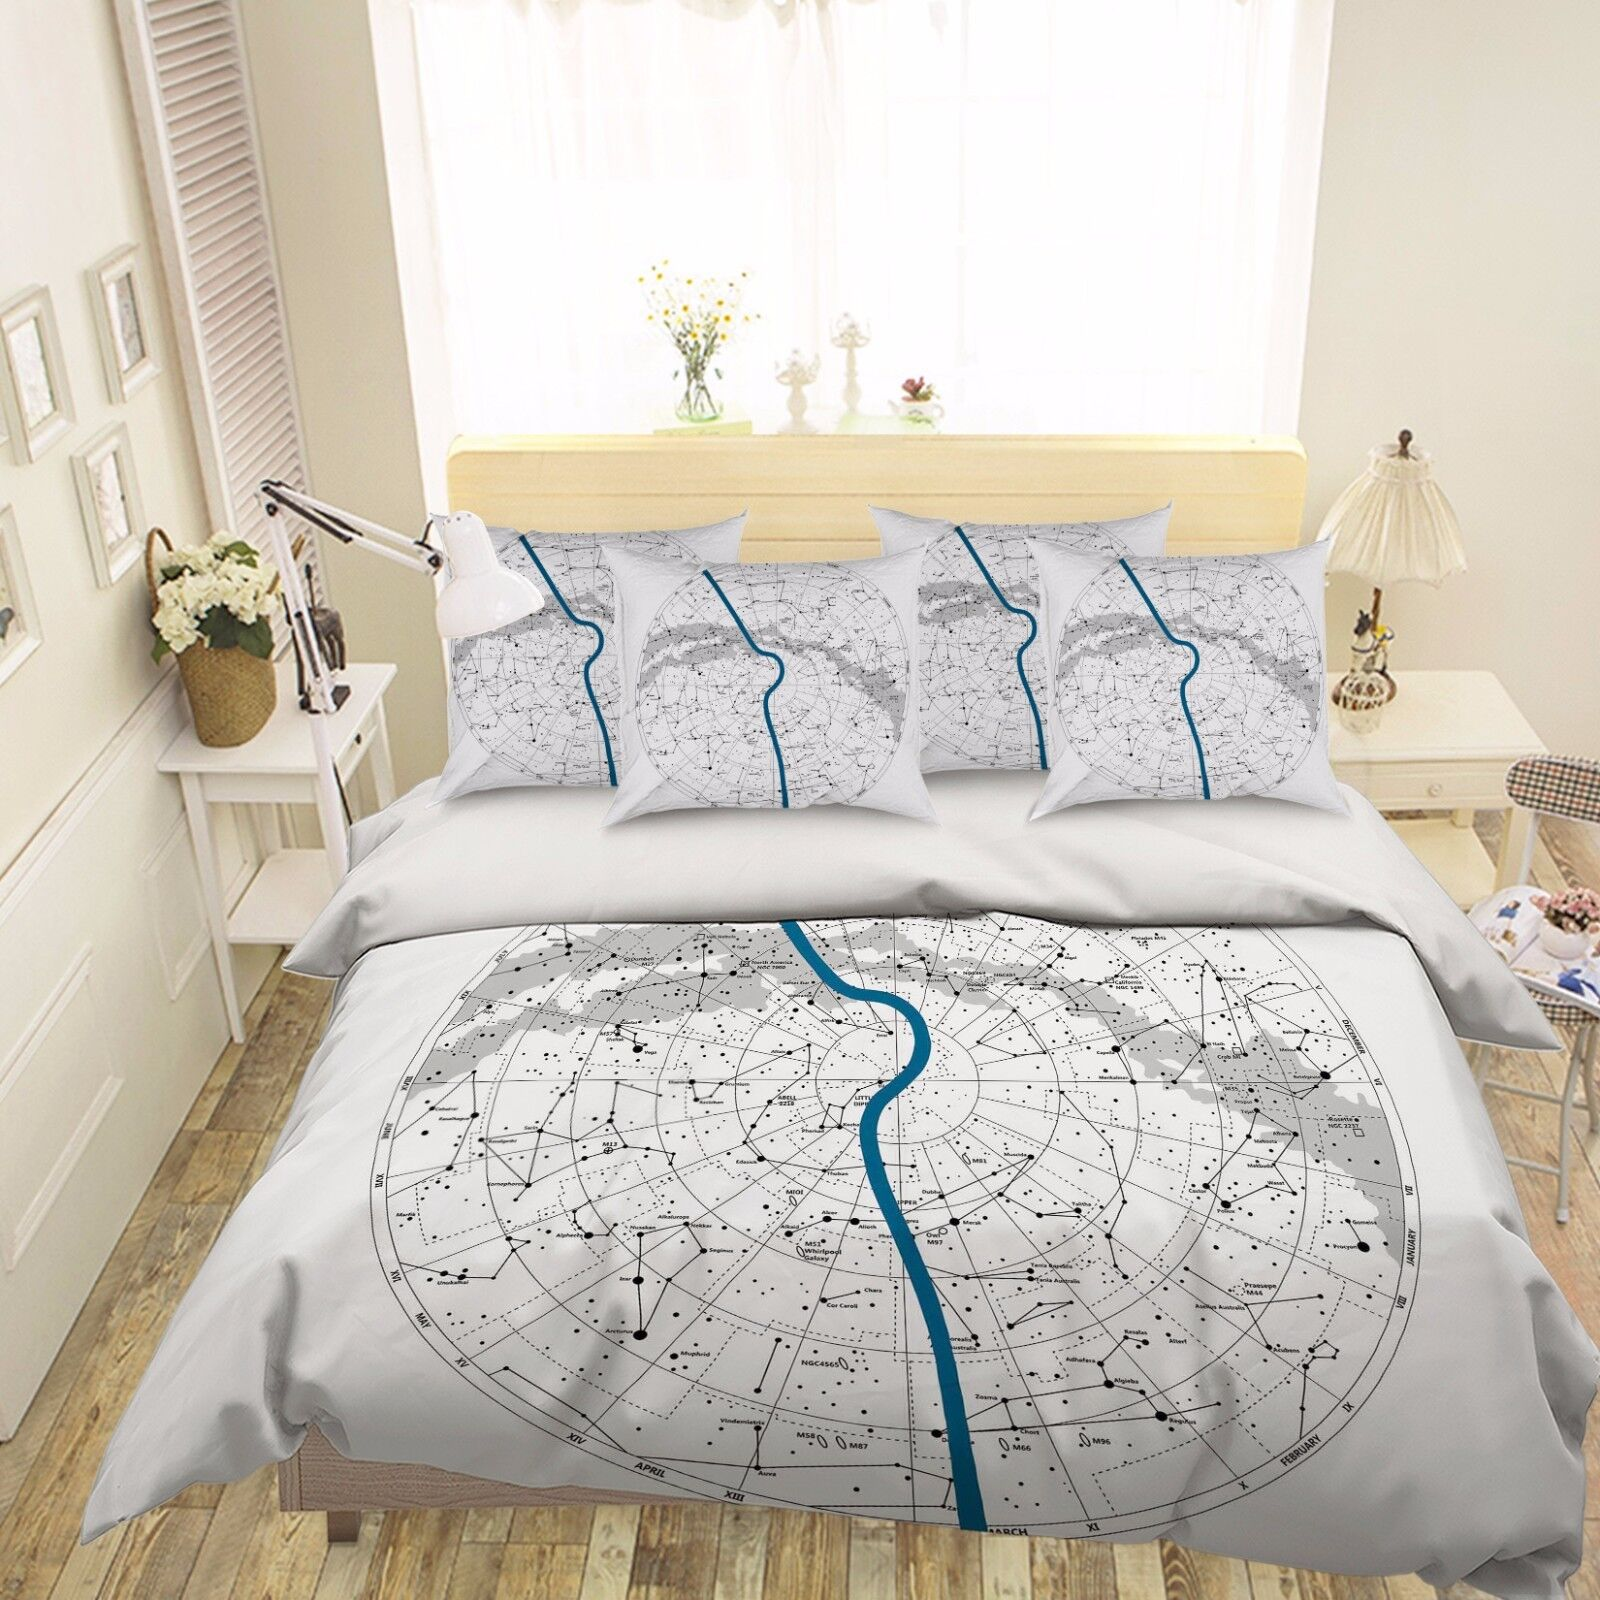 3D Sketch Map 886 Bed Pillowcases Quilt Duvet Cover Set Single Queen UK Carly